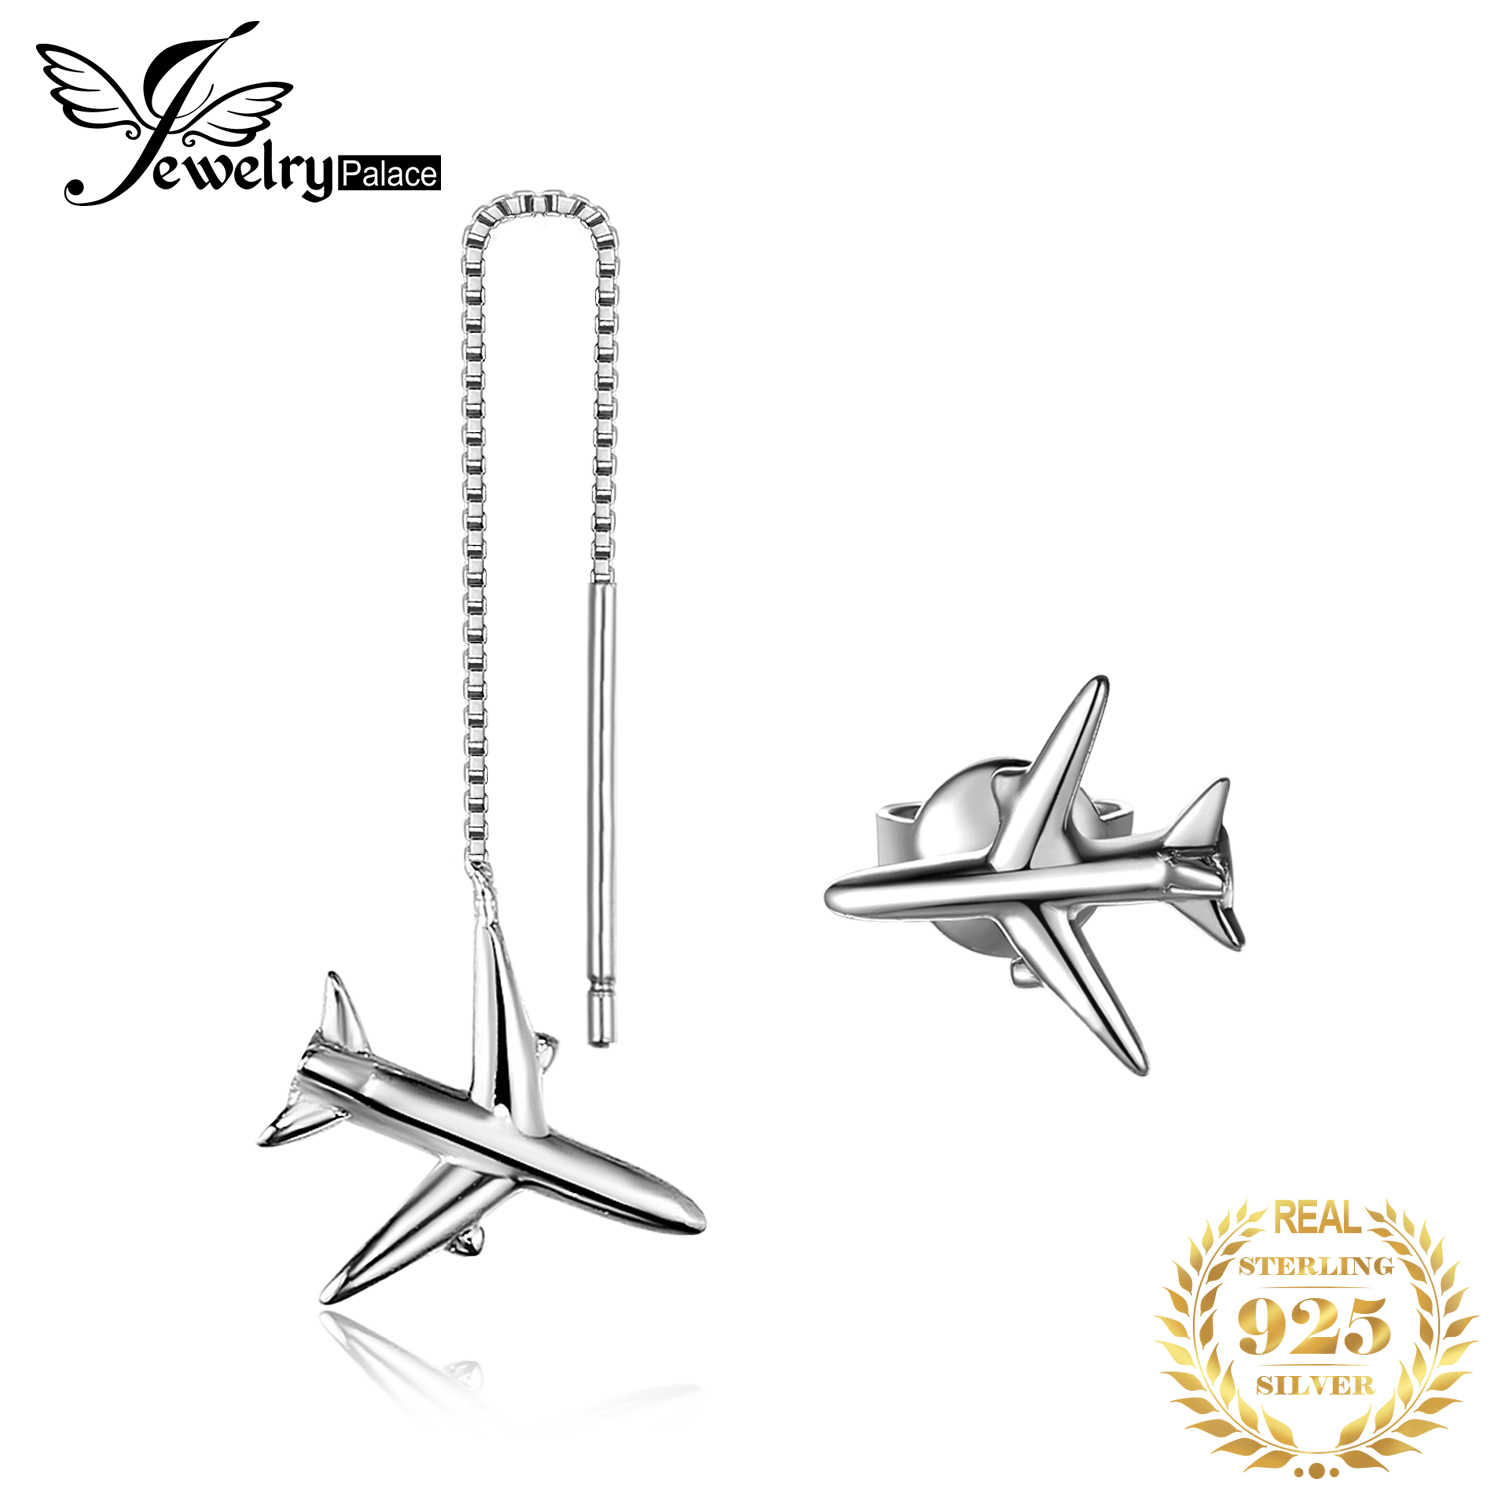 JewelryPalace 925 Sterling Silver Earrings Asymmetric Airplane Thread Earrings Stud Women Girls Anniversary Gifts Friendship